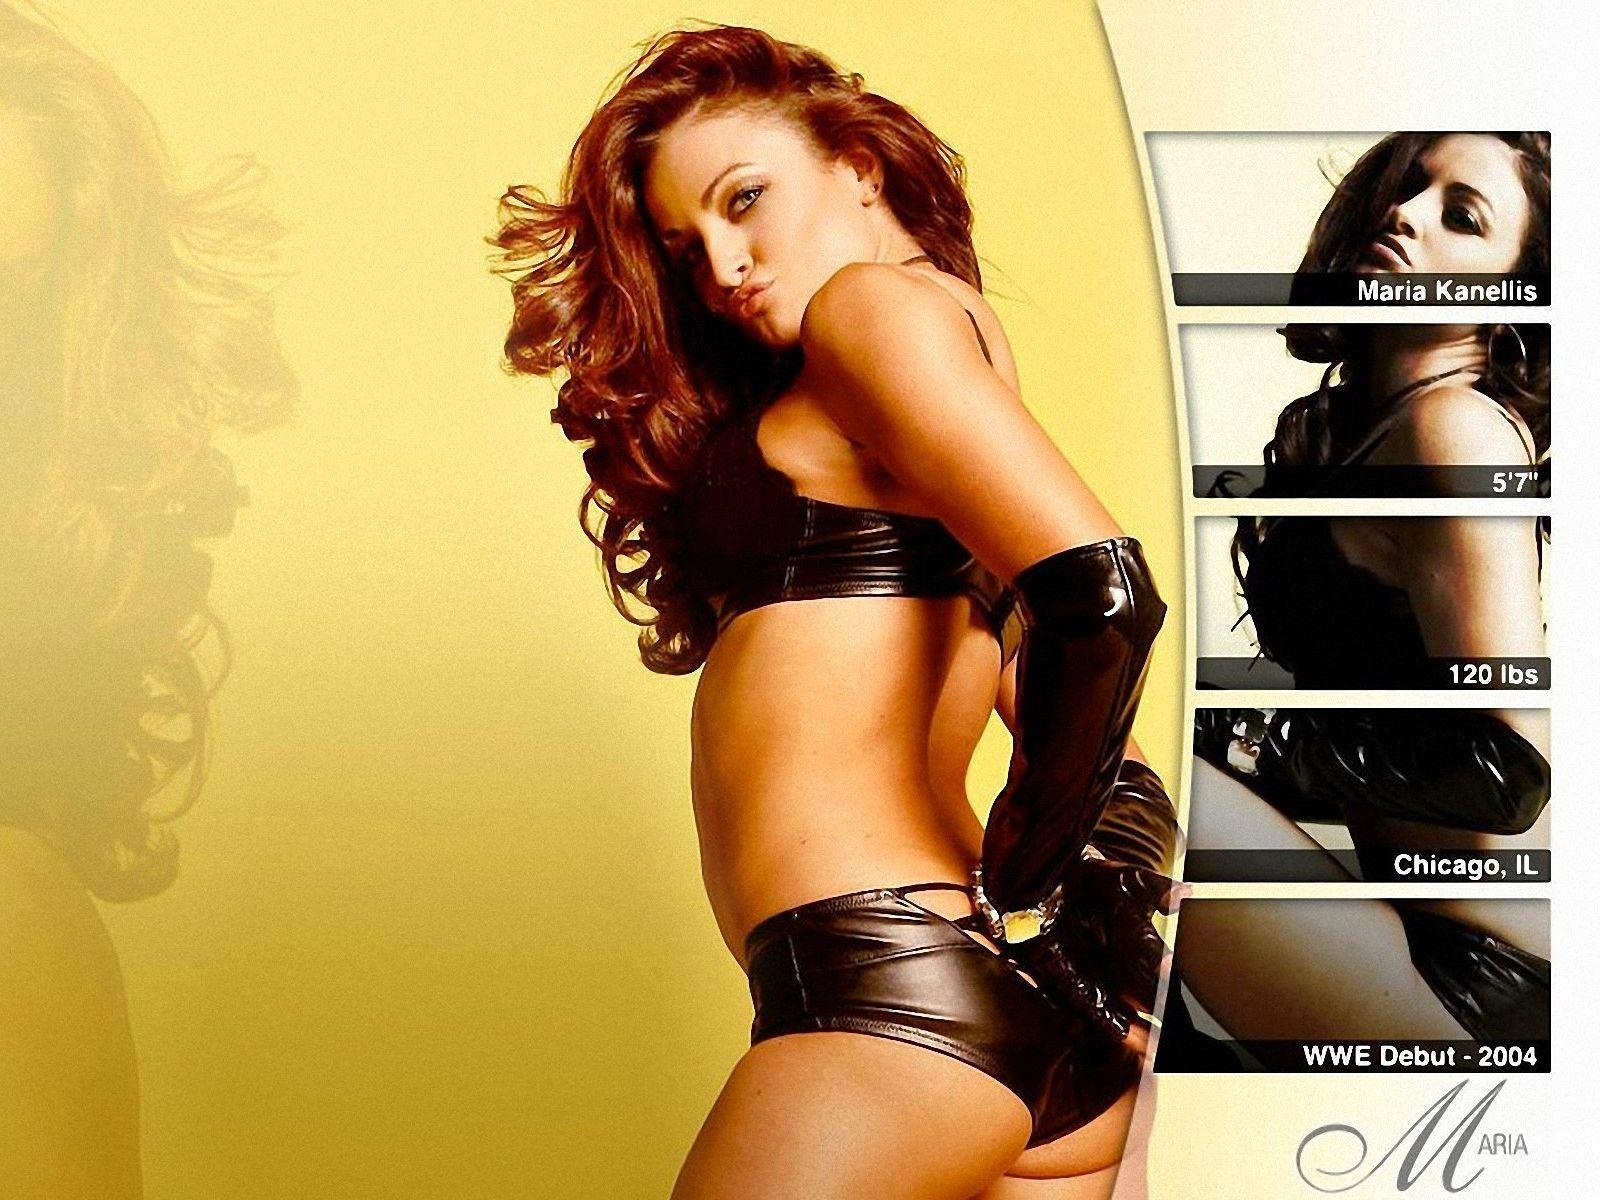 1600x1200 - Maria Kanellis Wallpapers 11